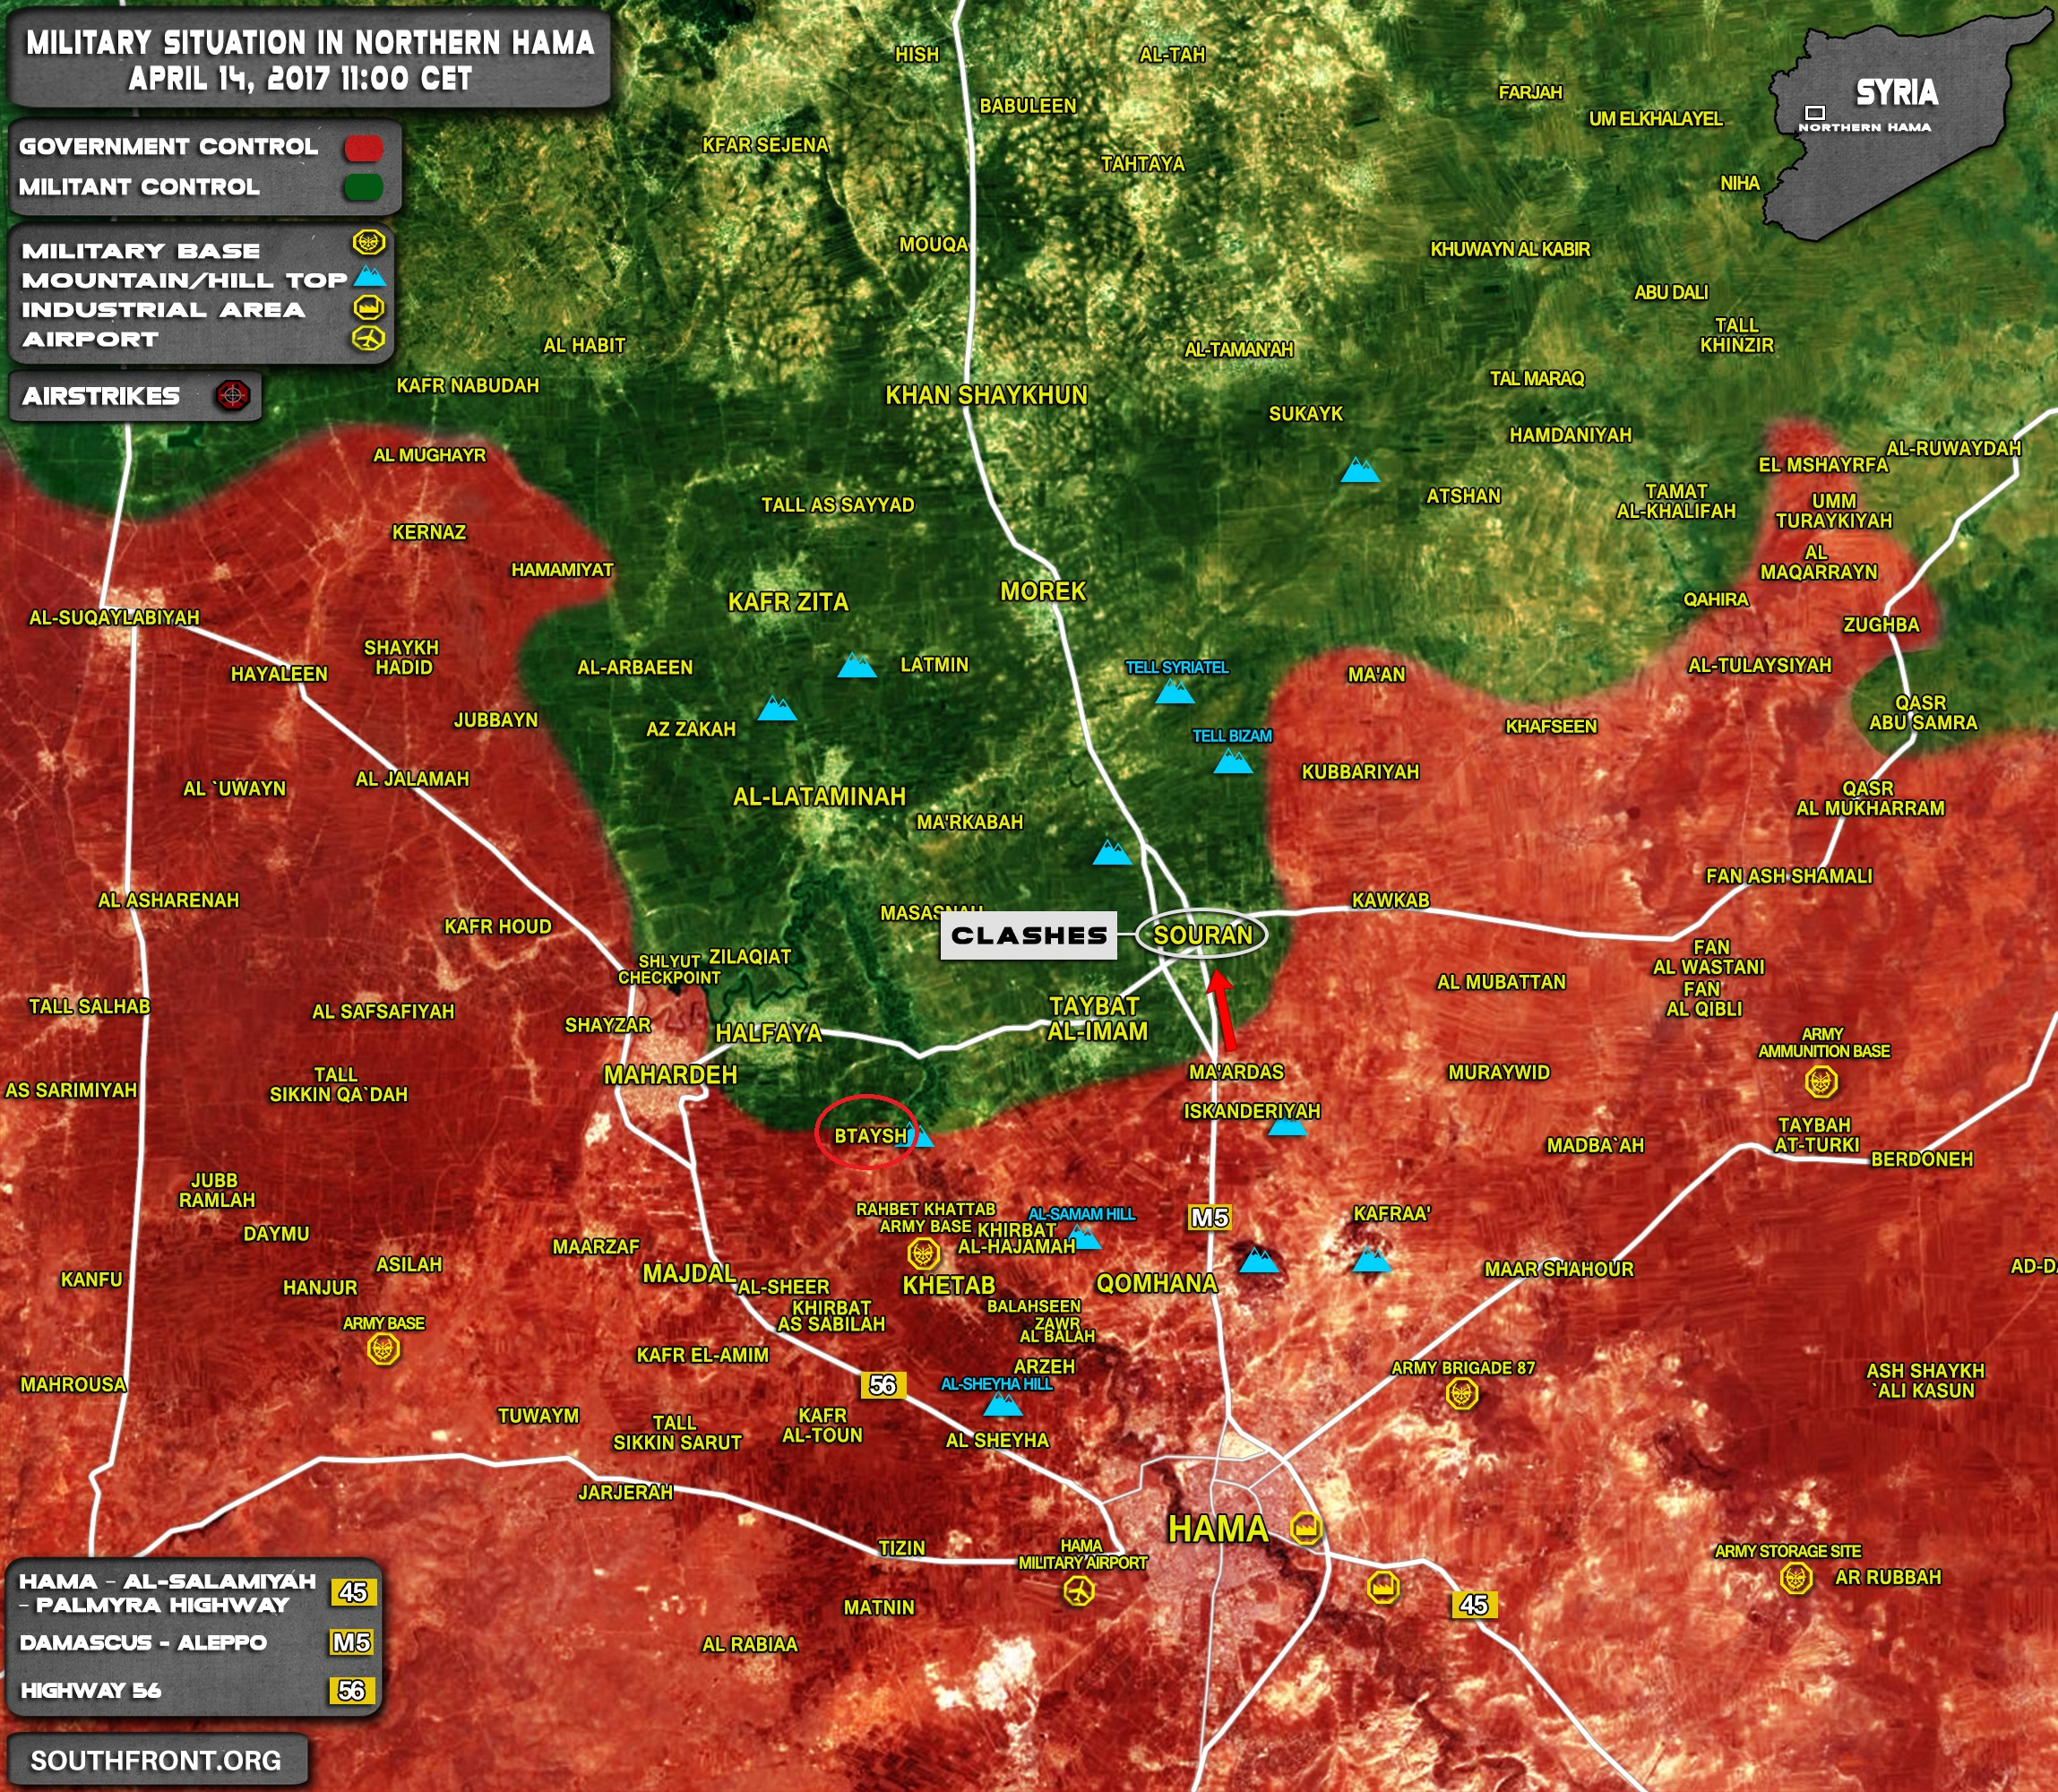 14april_11-00_Northern_Hama_Syria_War_Map